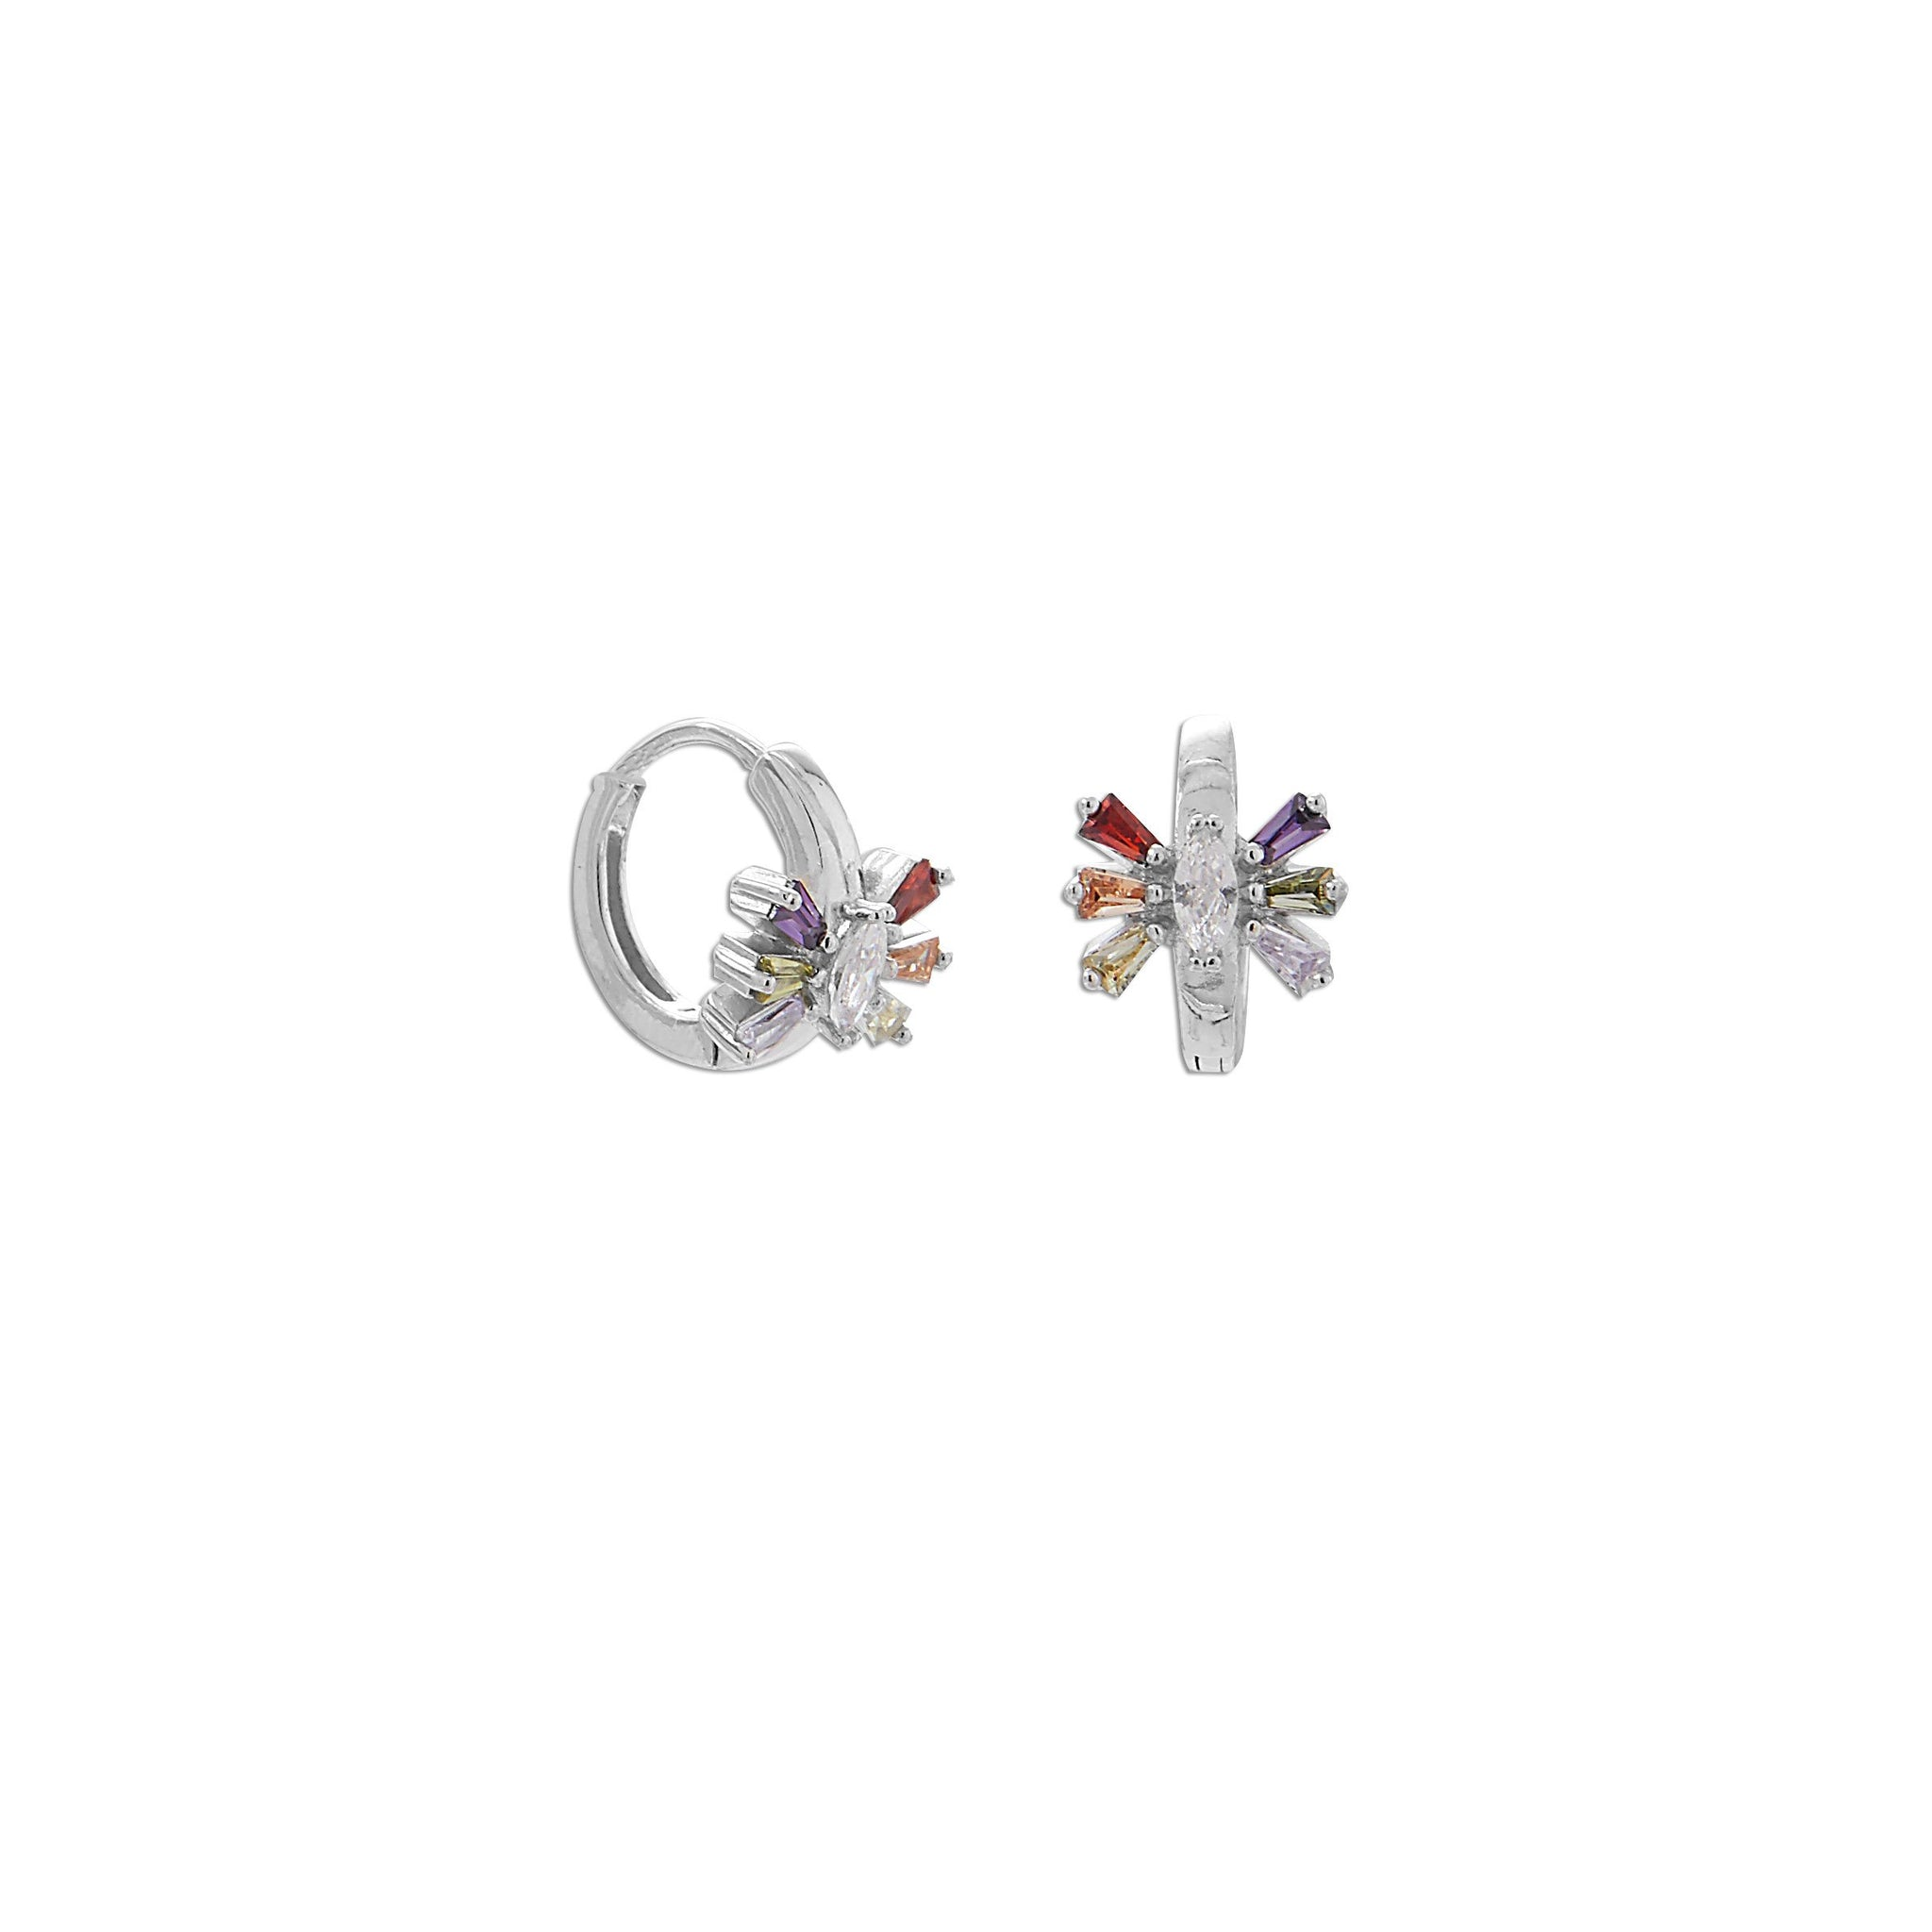 Rhodium Plated Multi Color CZ Huggie Hoop Earrings - Rocky Mt. Outlet Inc - Shop & Save 24/7